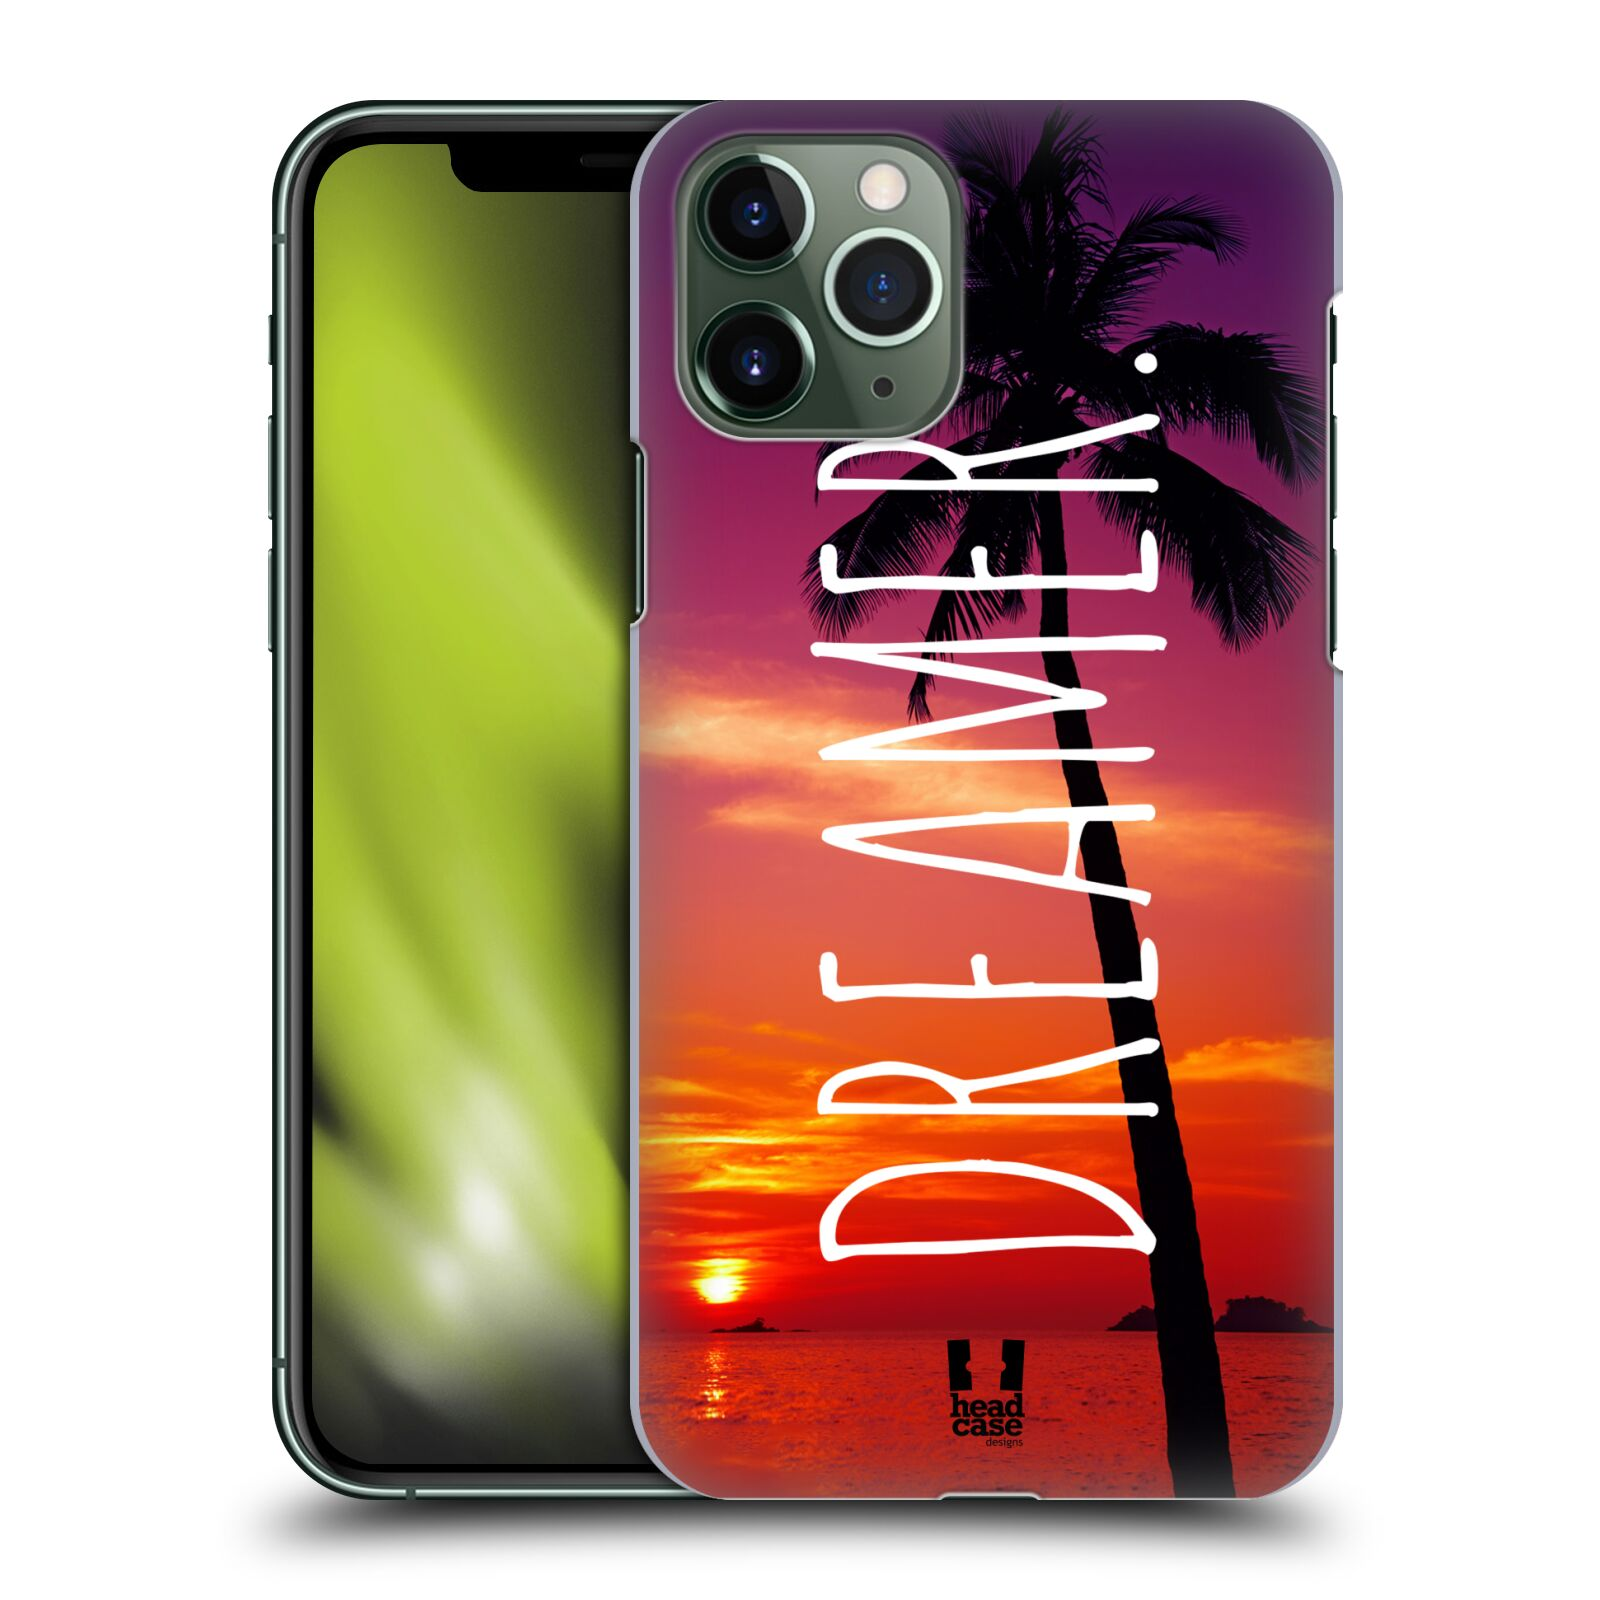 iphone 8 plus kryt karl lagerfeld | Plastové pouzdro na mobil Apple iPhone 11 Pro - Head Case - MIX DREAMER